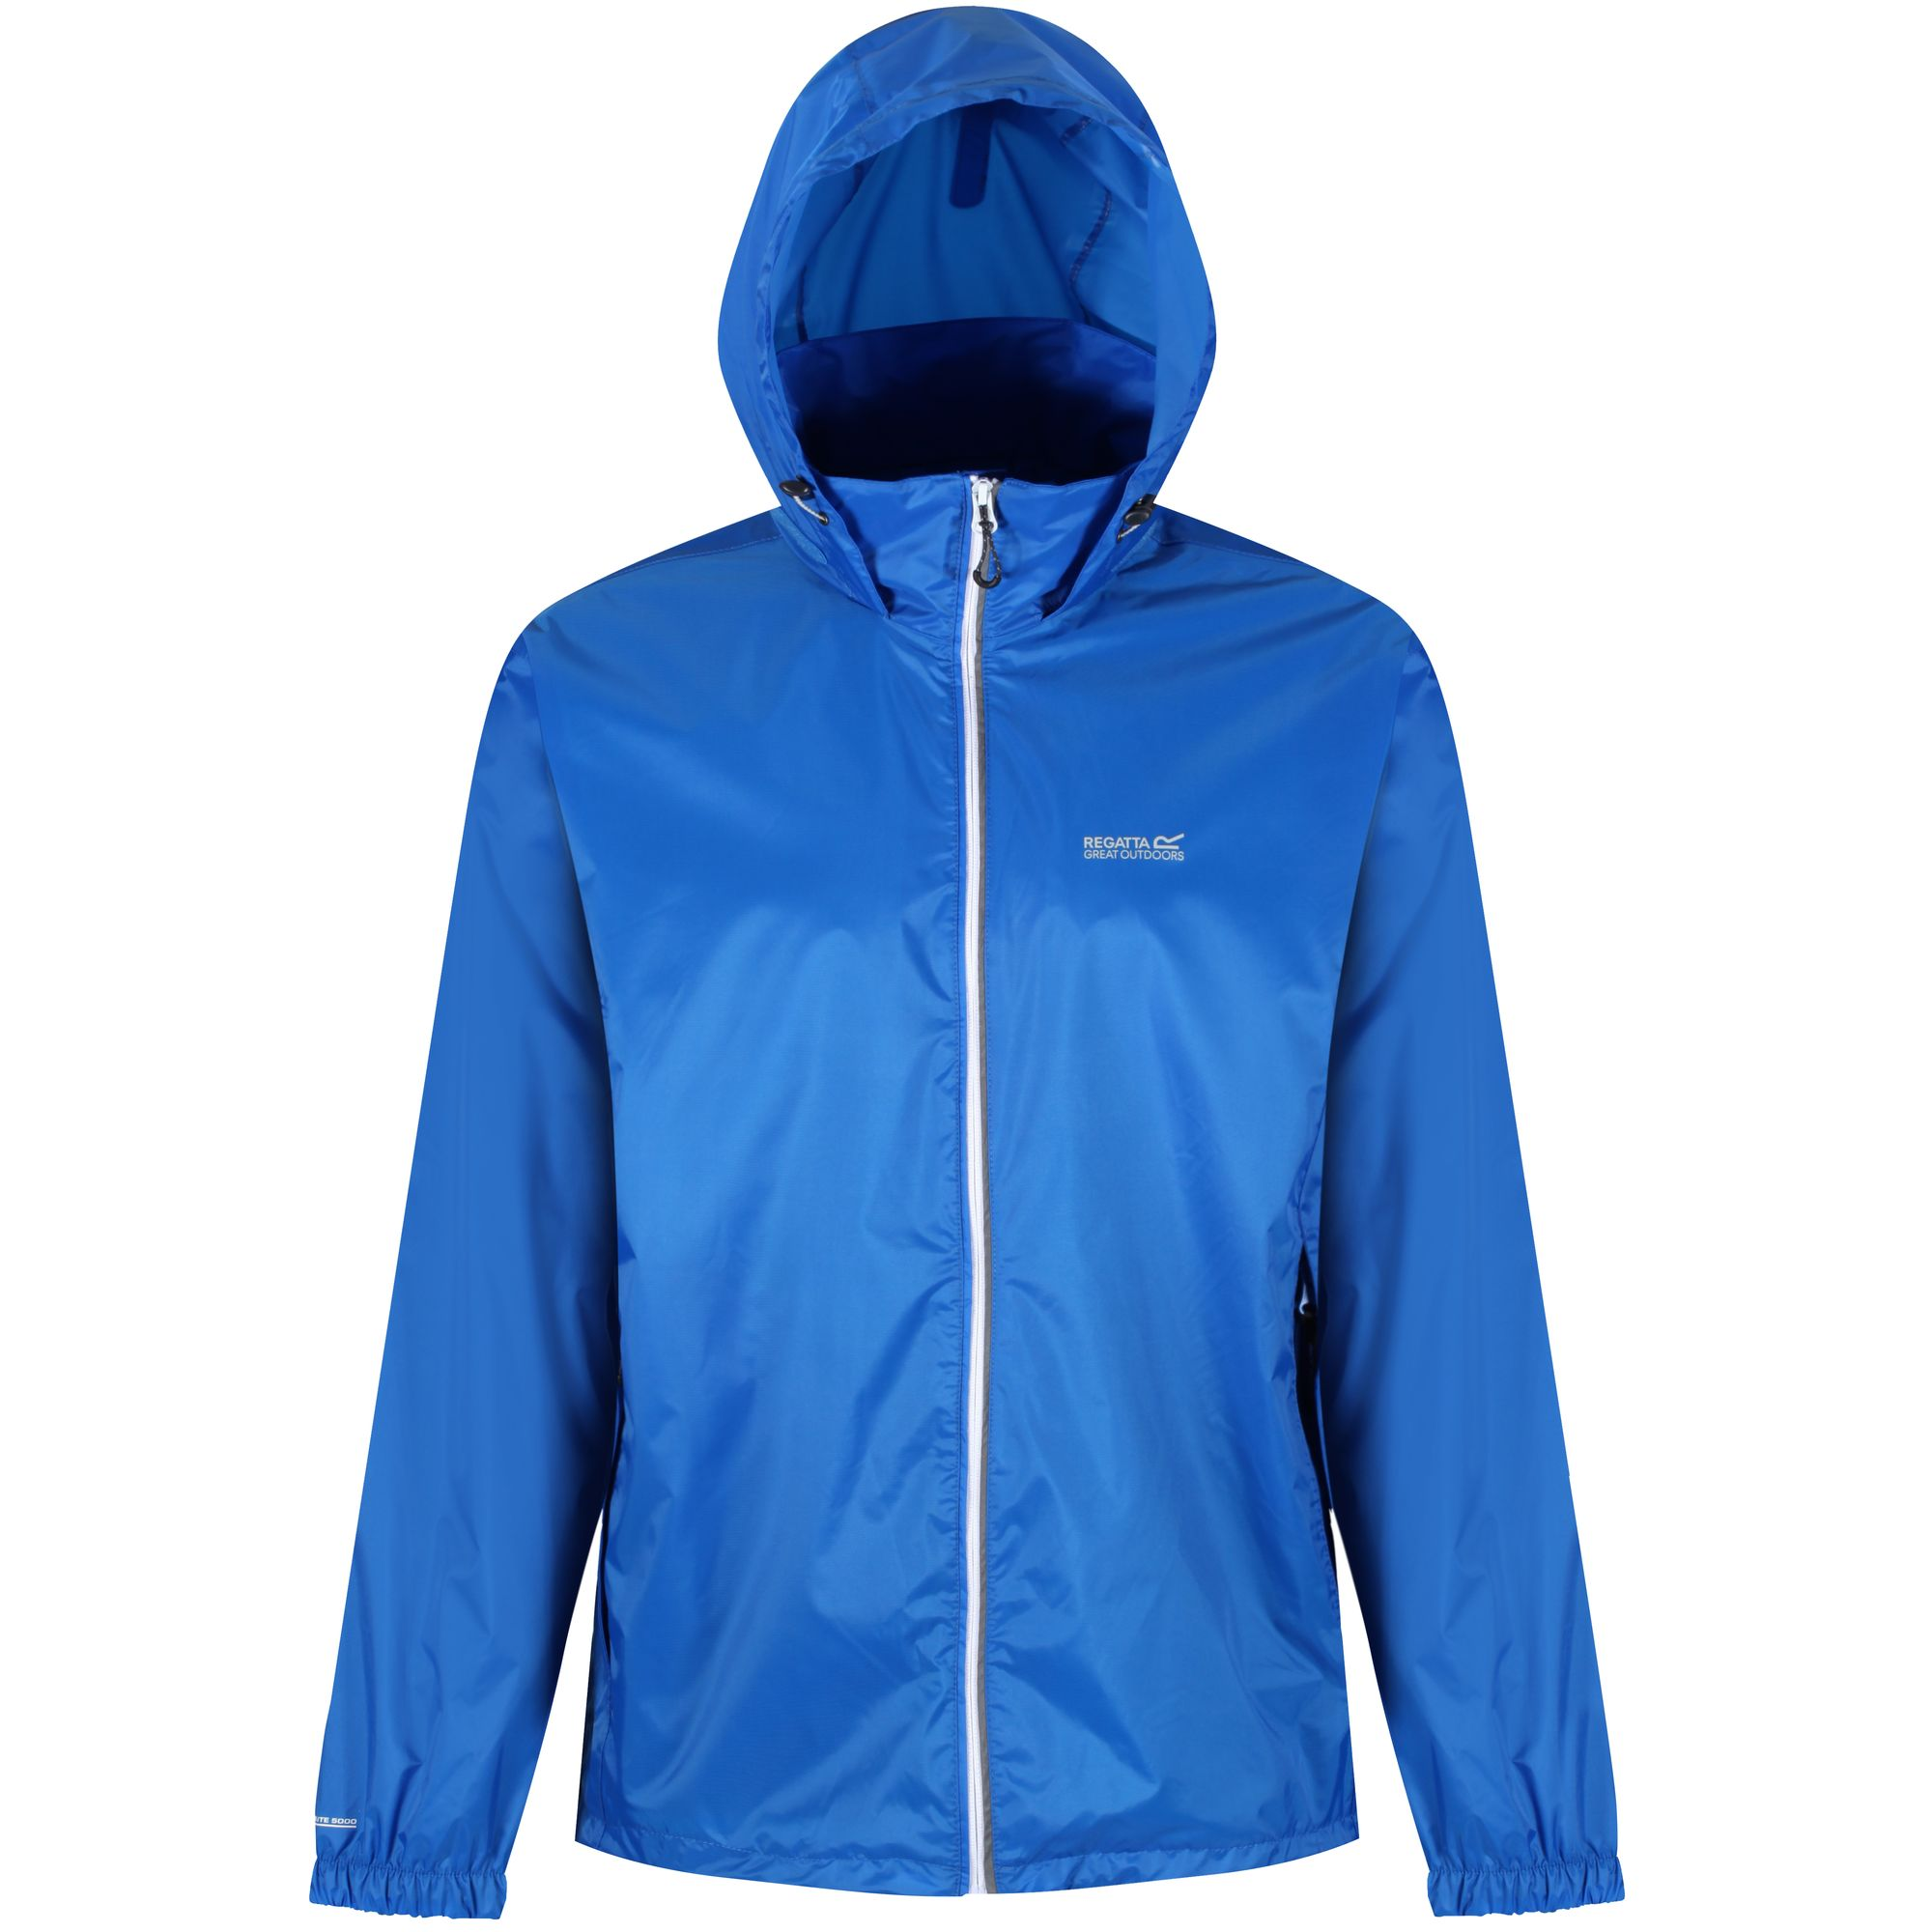 Mens-Regatta-Lightweight-Waterproof-Windproof-Jacket-Clearance-RRP-70-00 thumbnail 37